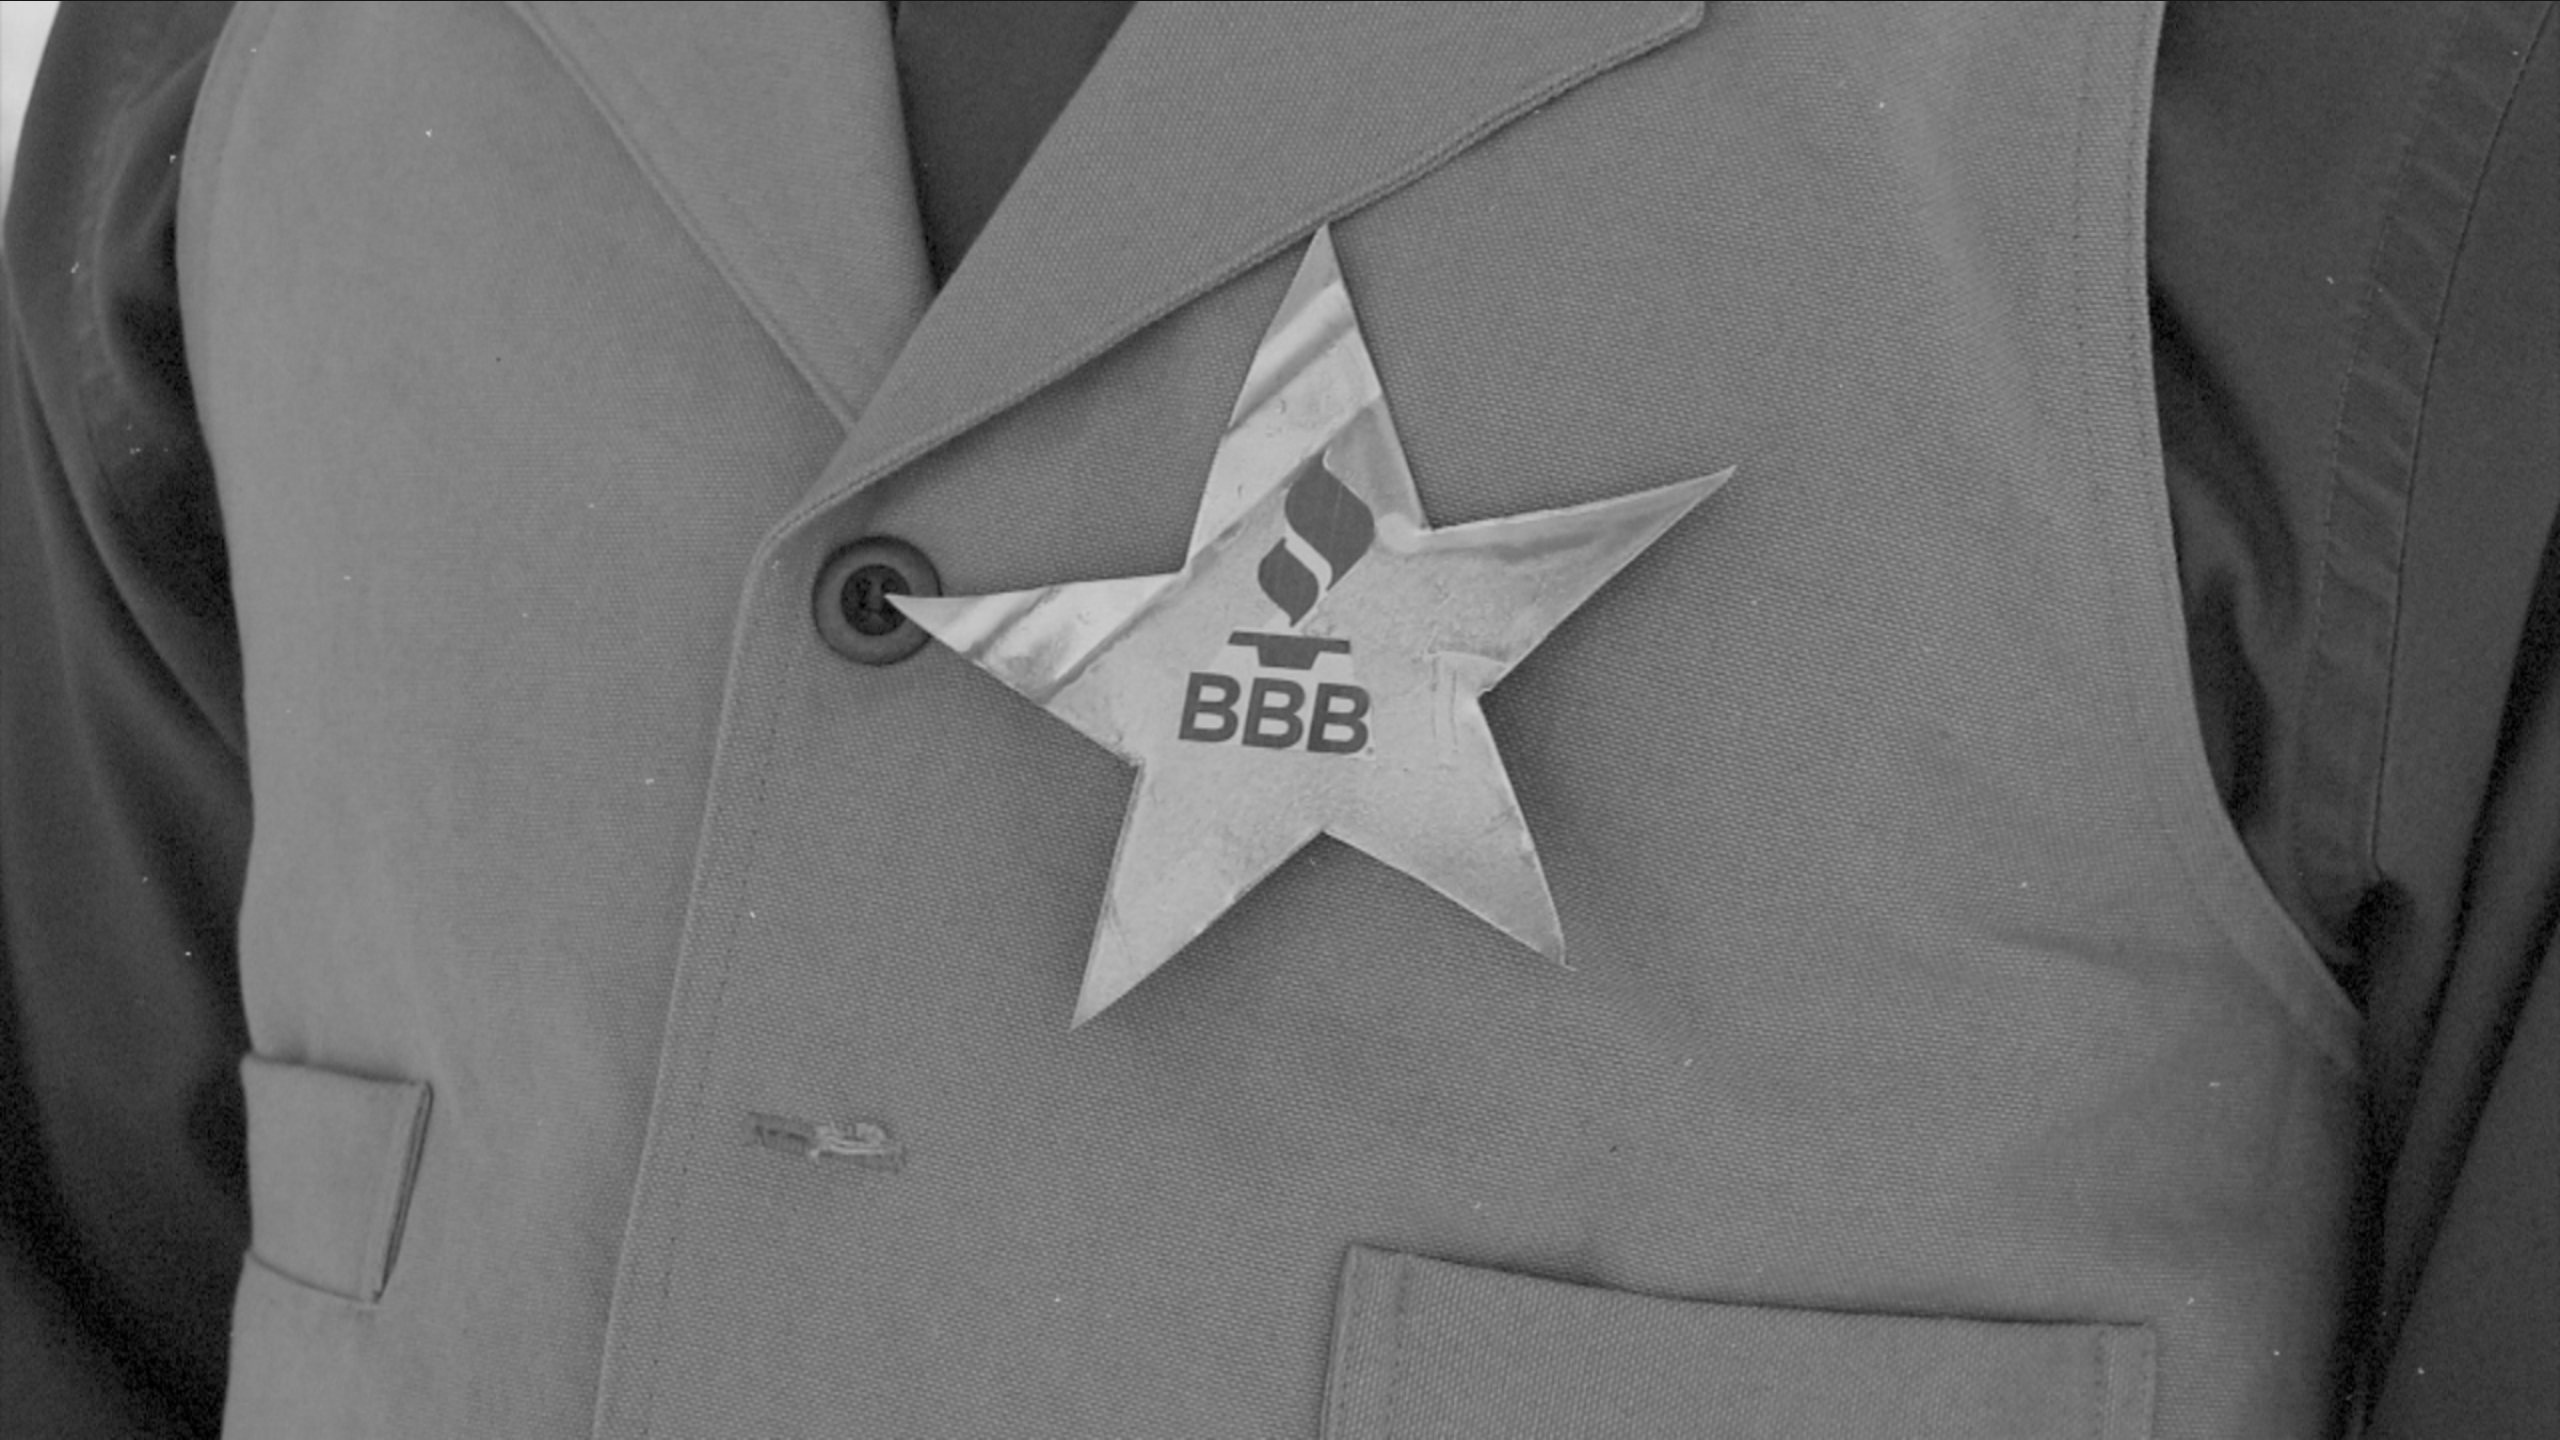 The Sheriff of BBB